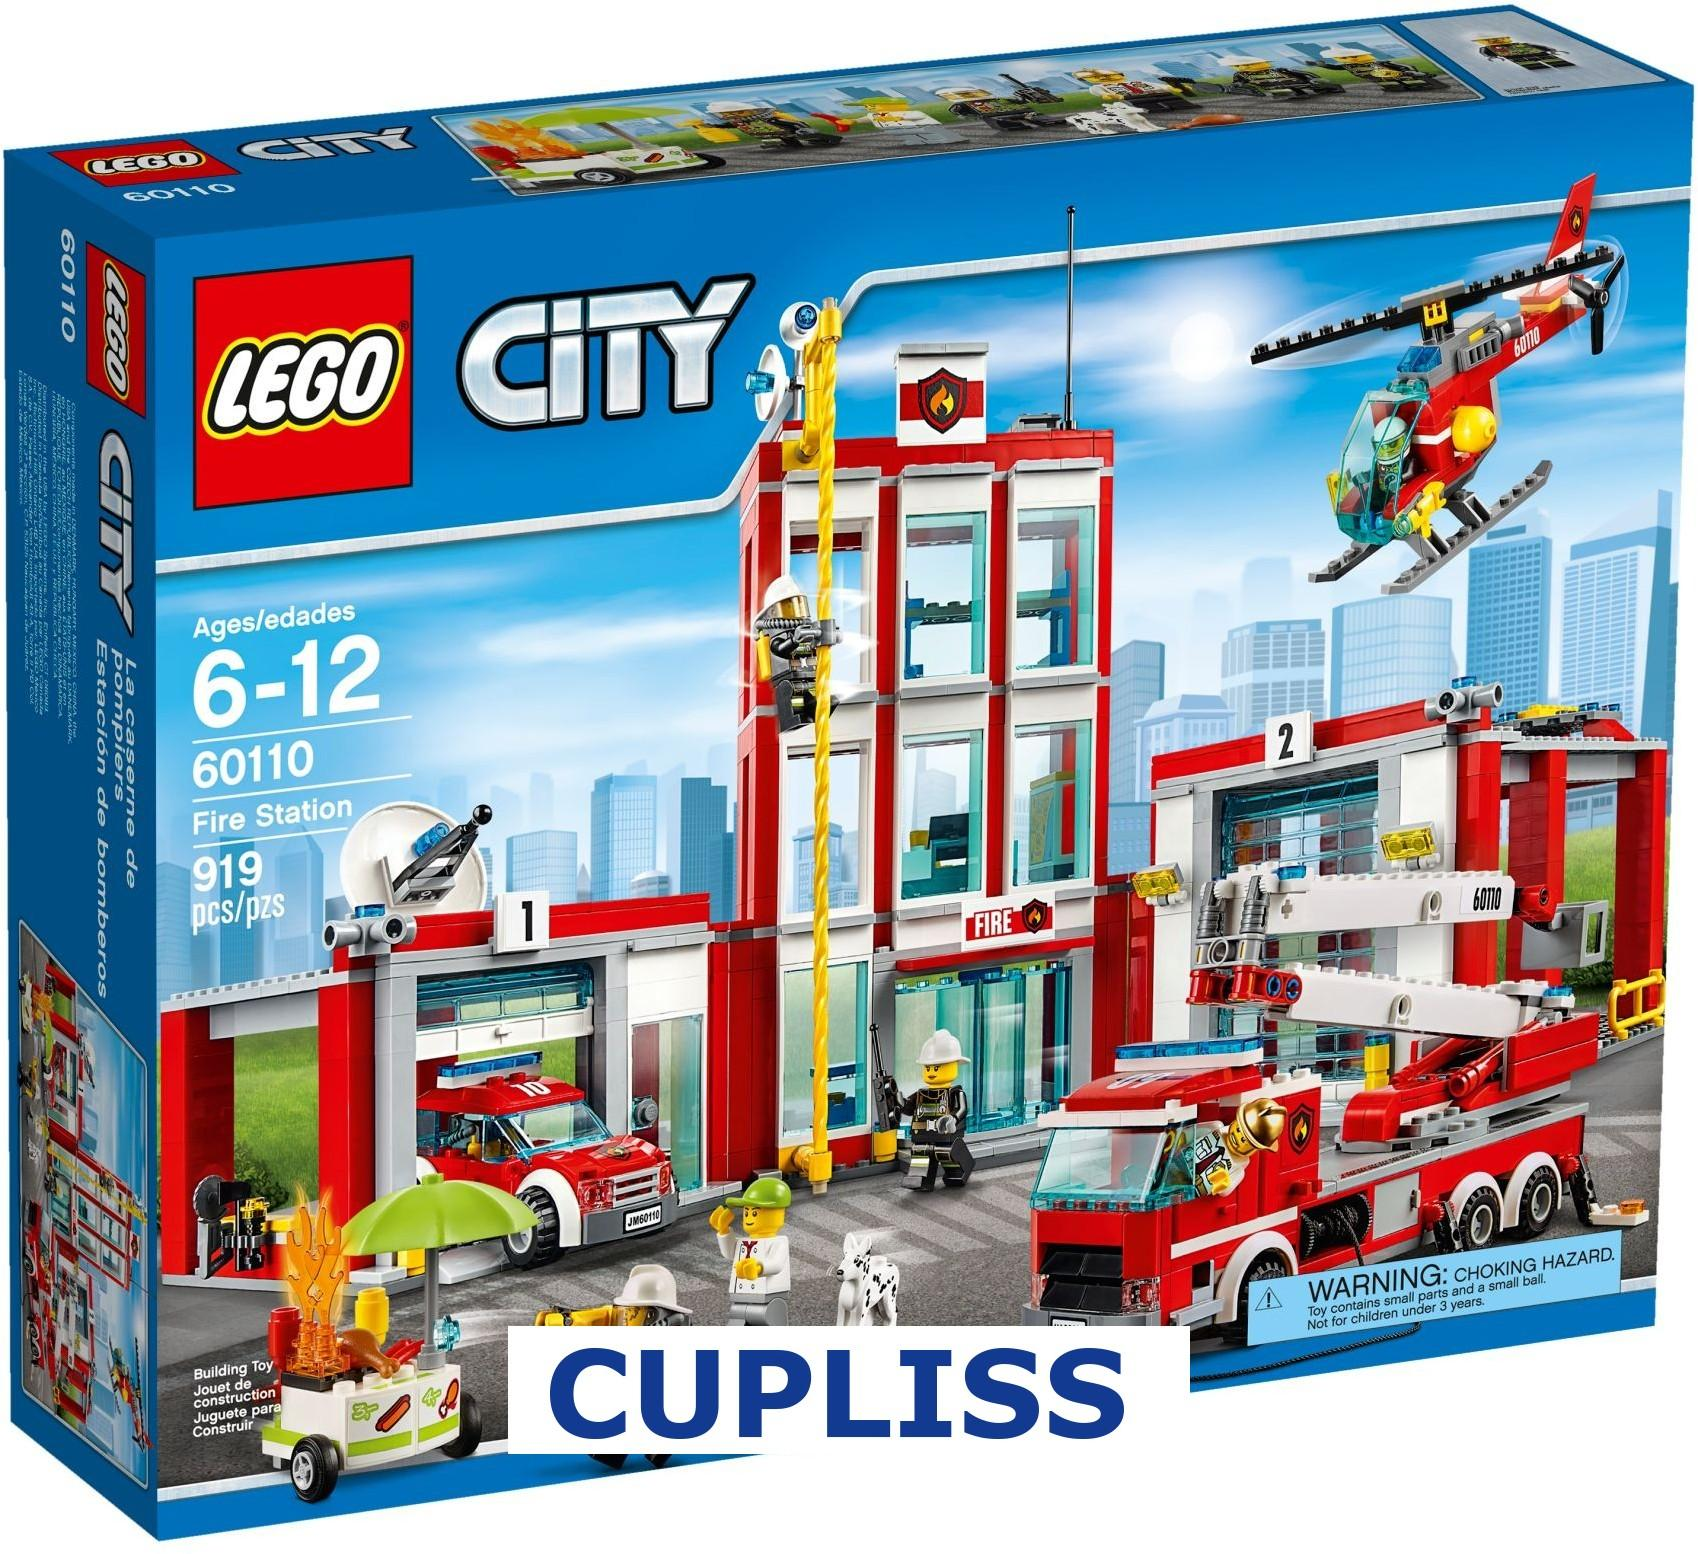 Buy Sell Cheapest Lego Pernikahan Set Best Quality Product Deals 5682 Duplo Fire Truck City 60110 Station